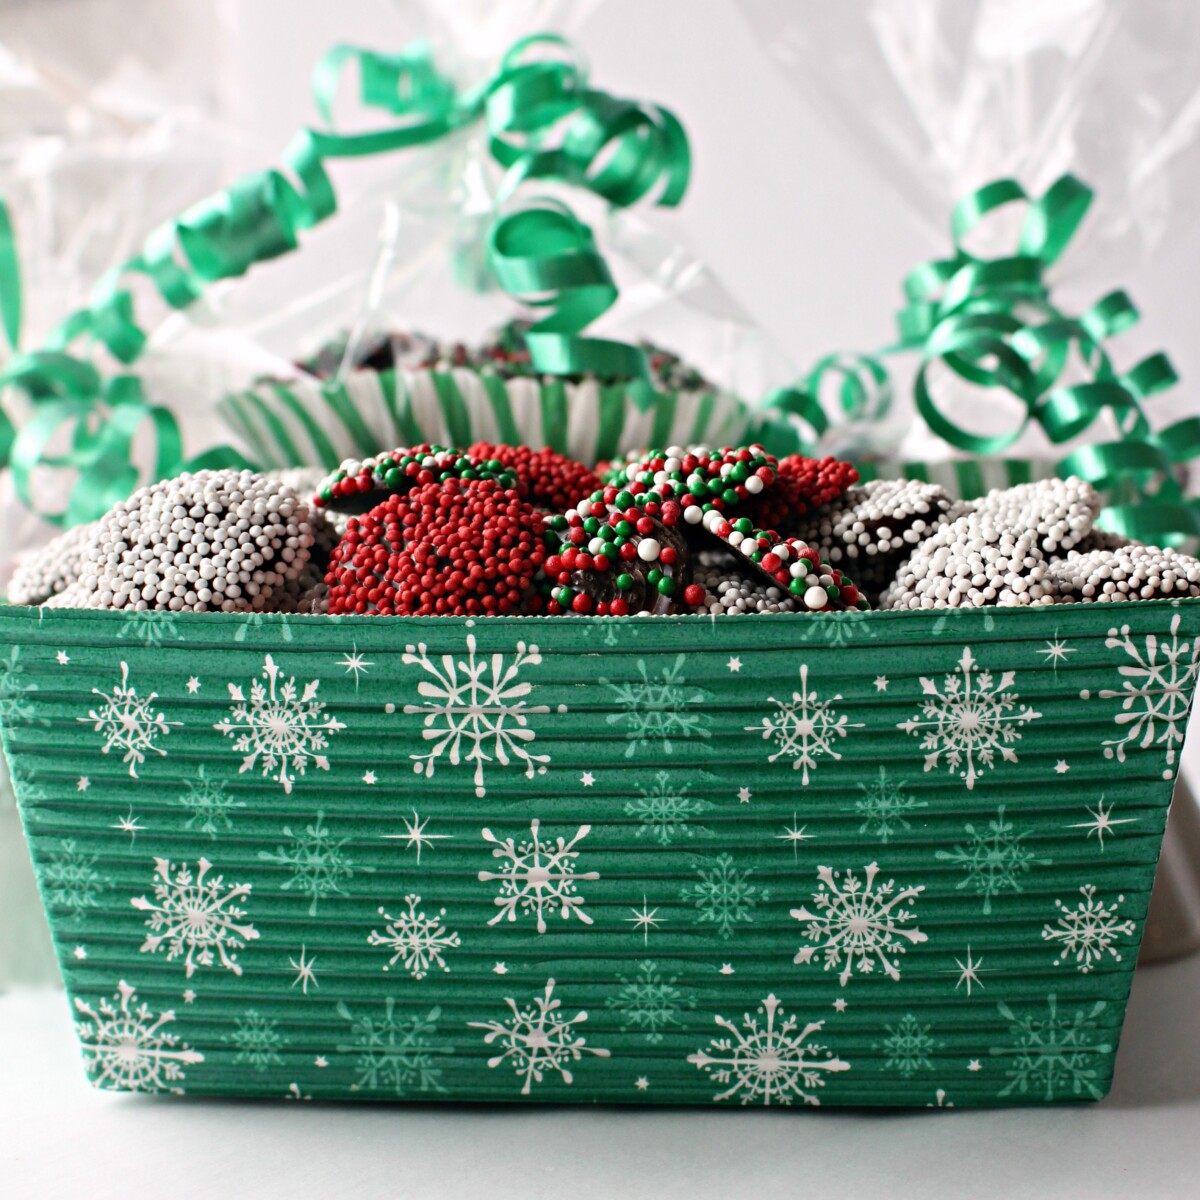 Candies in a green gift box with a snowflake pattern.